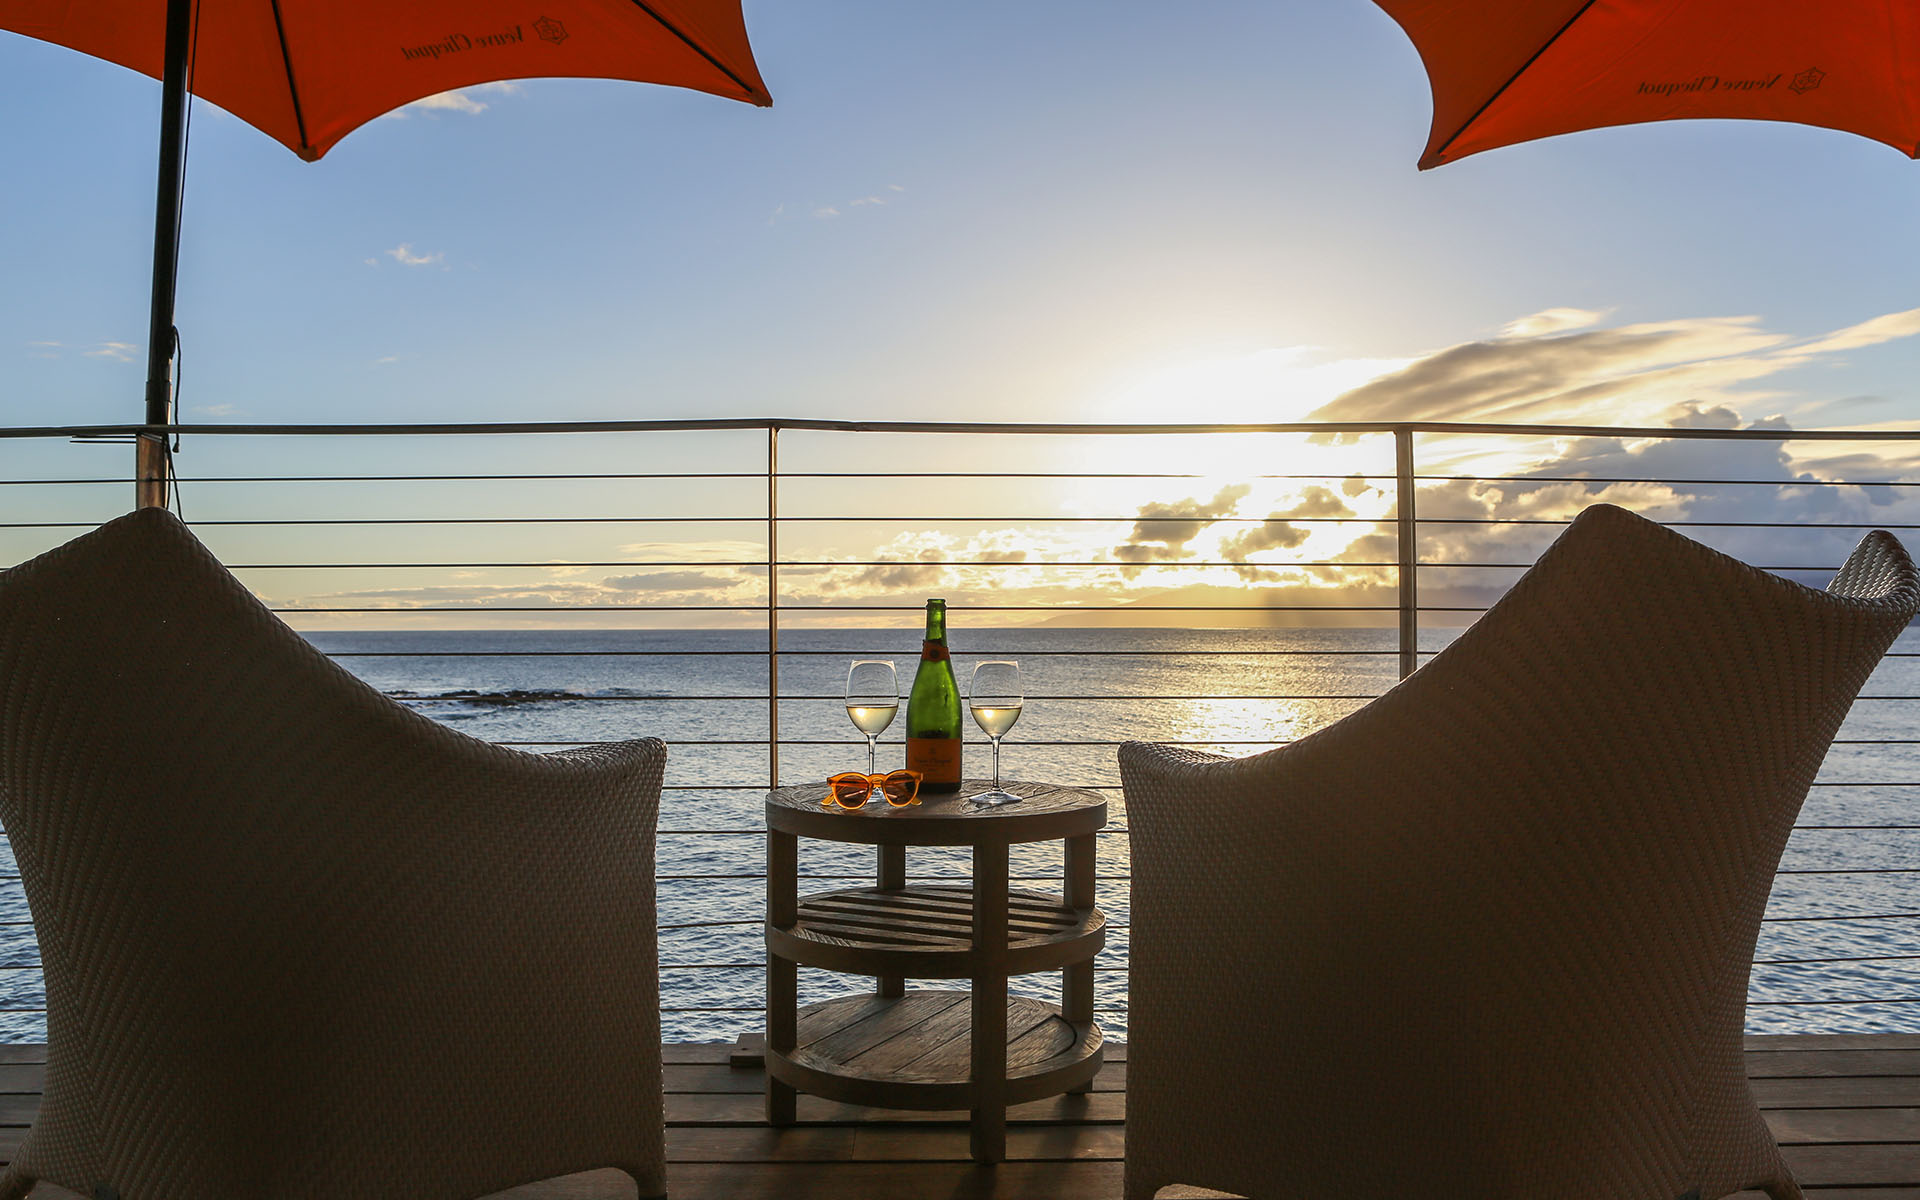 Champagne Hale at Cliff House Returns for Reservations in February